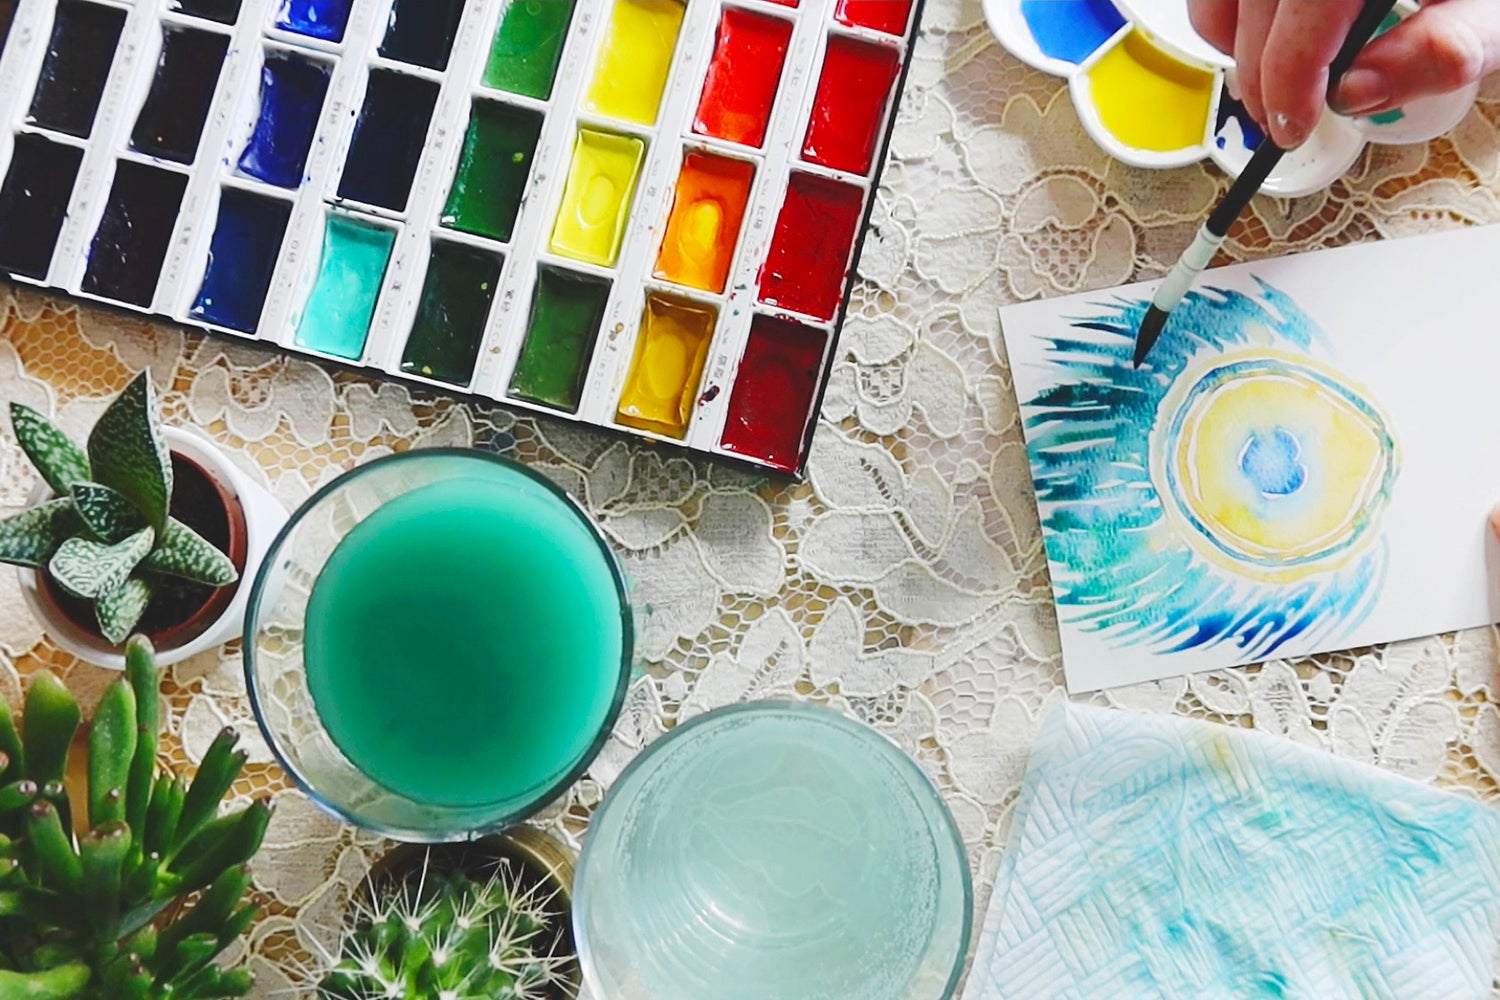 Let's Get Crafty: Watercolour Painting Tutorial